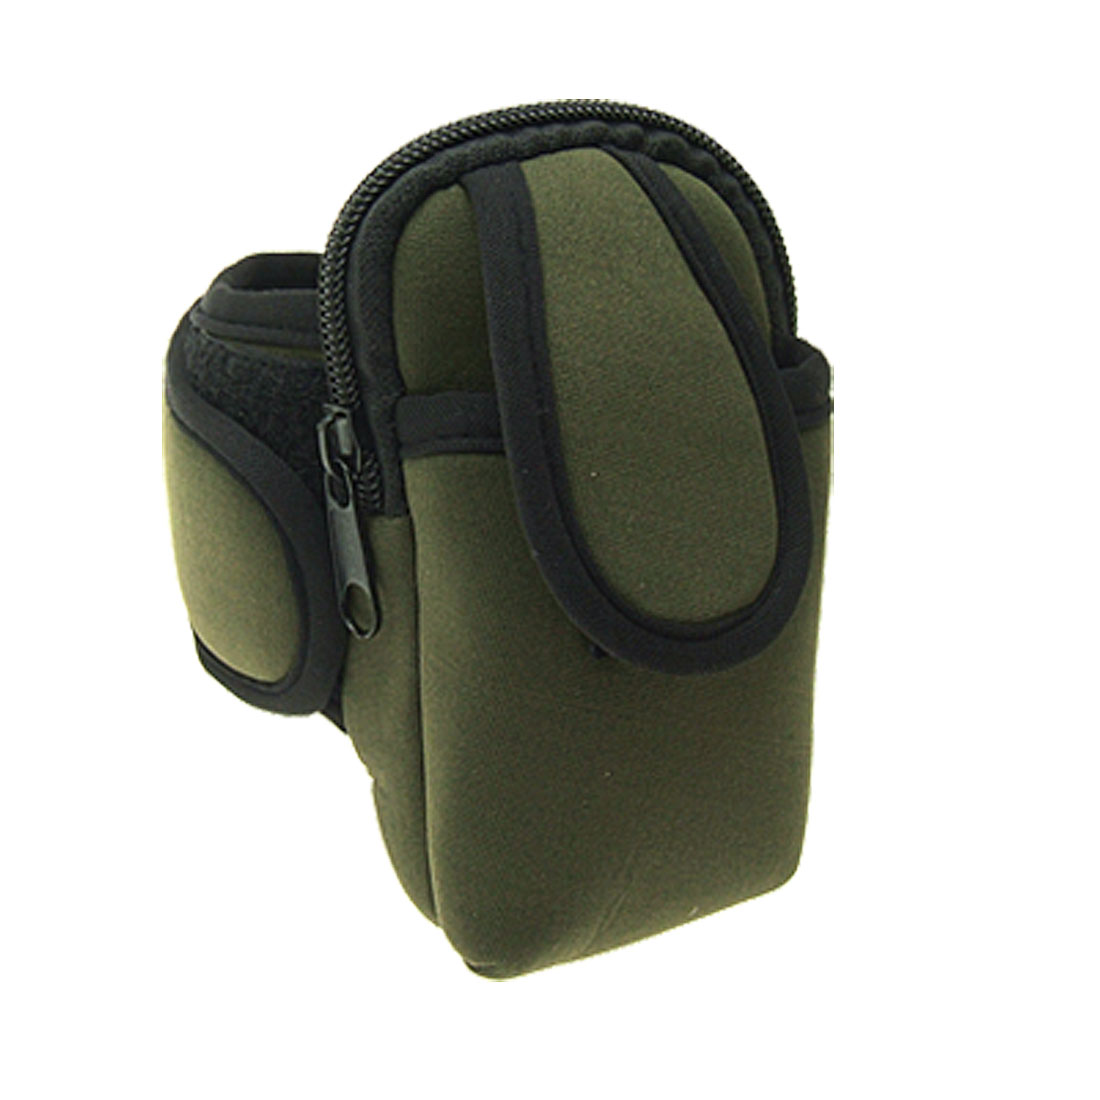 Neoprene Double Pocket Mobile Pouch Arm Bag with Hook and Loop Fastener Strap